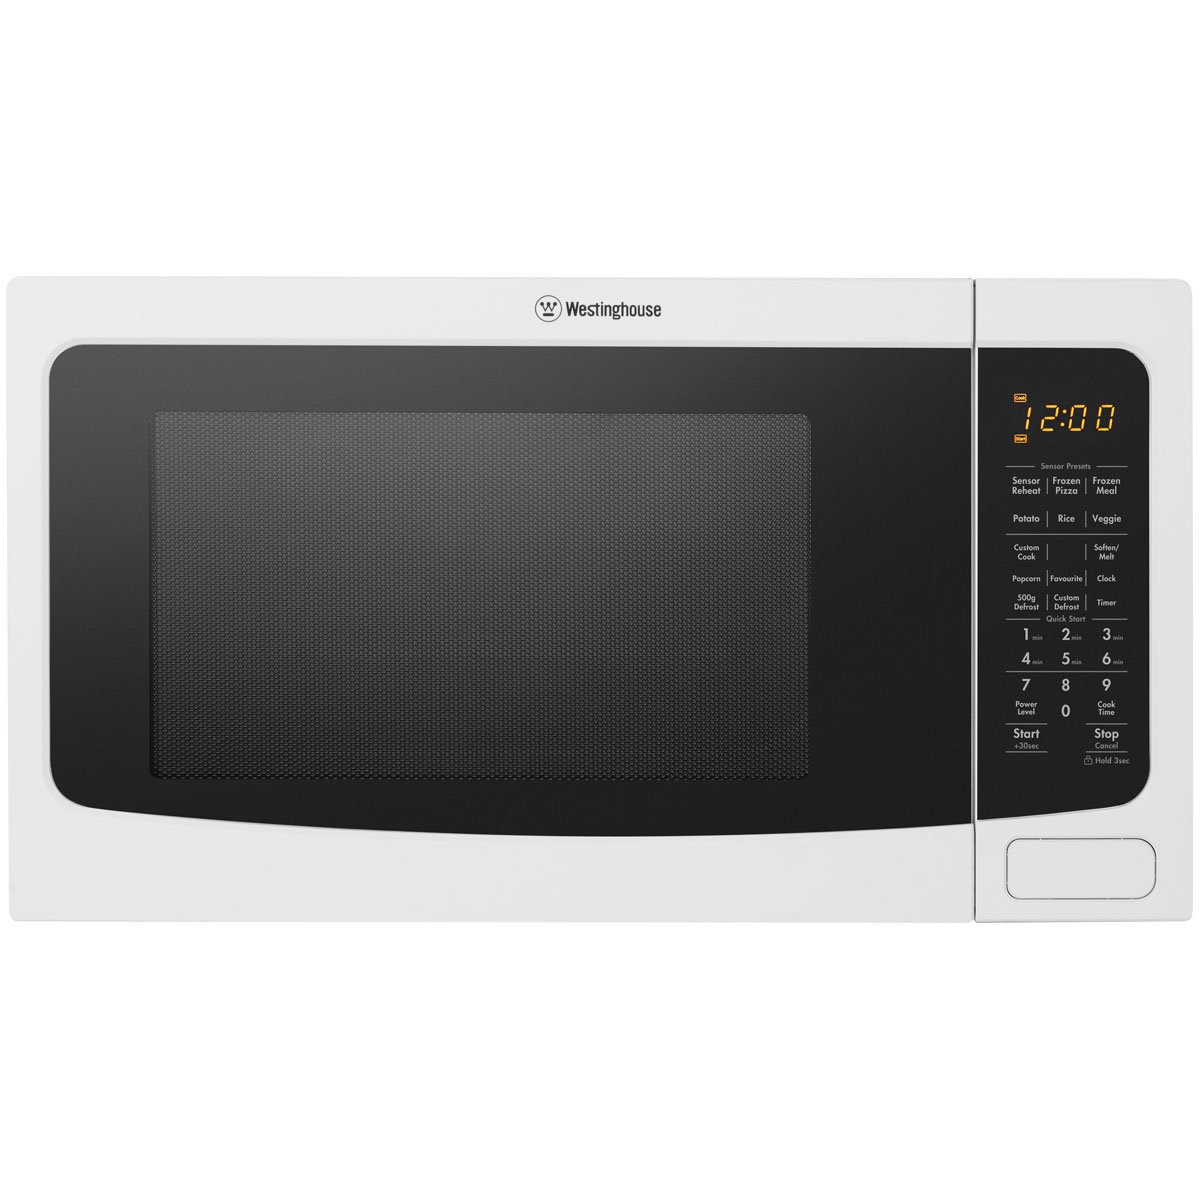 Westinghouse WMF4102WA 40L Microwave Oven 1100W